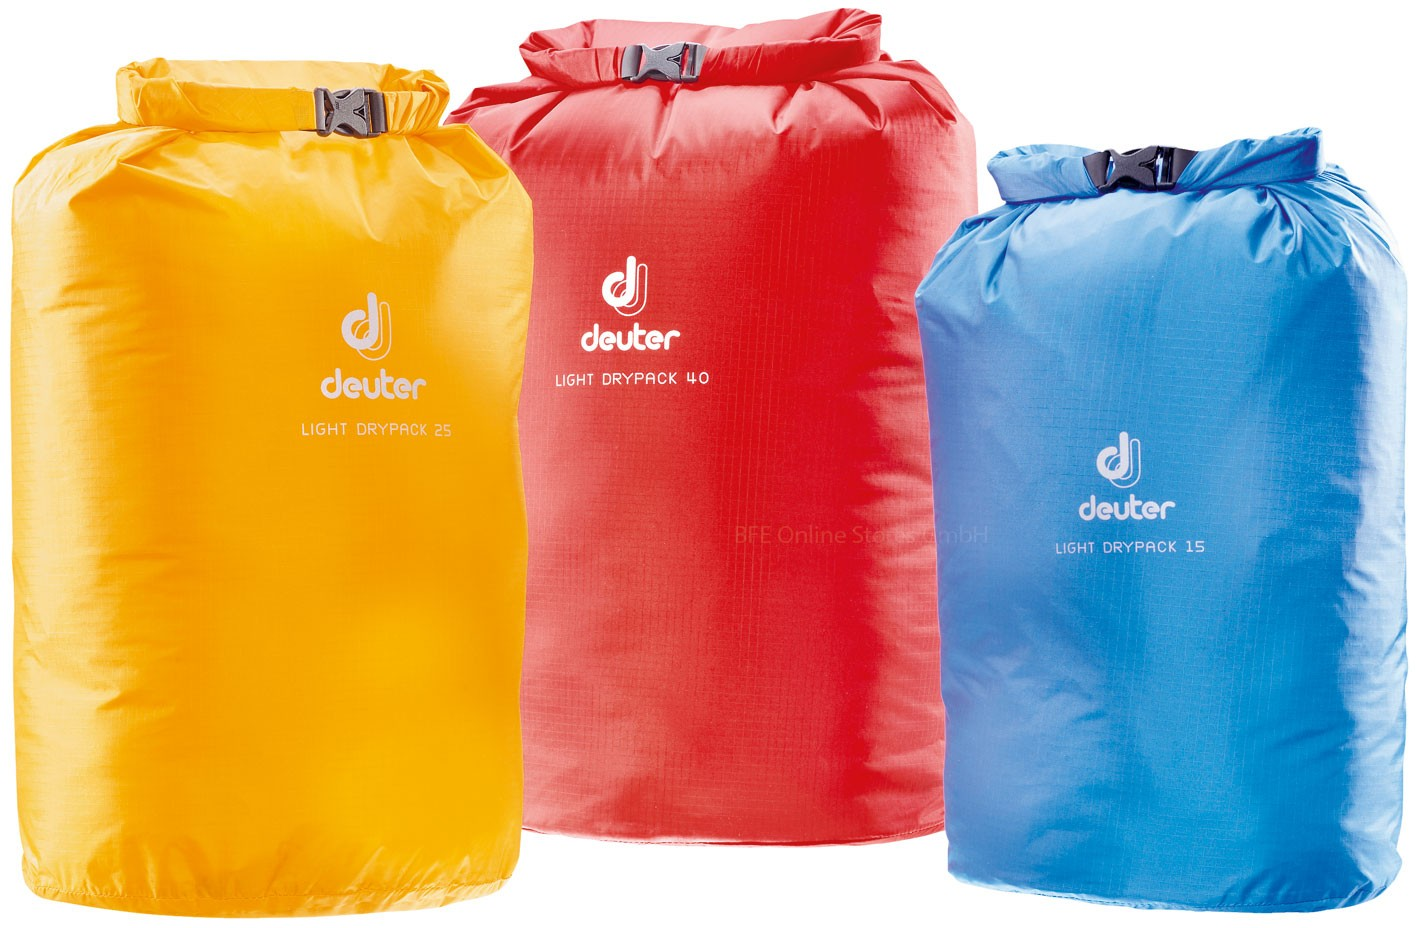 Deuter Light Drypack 25